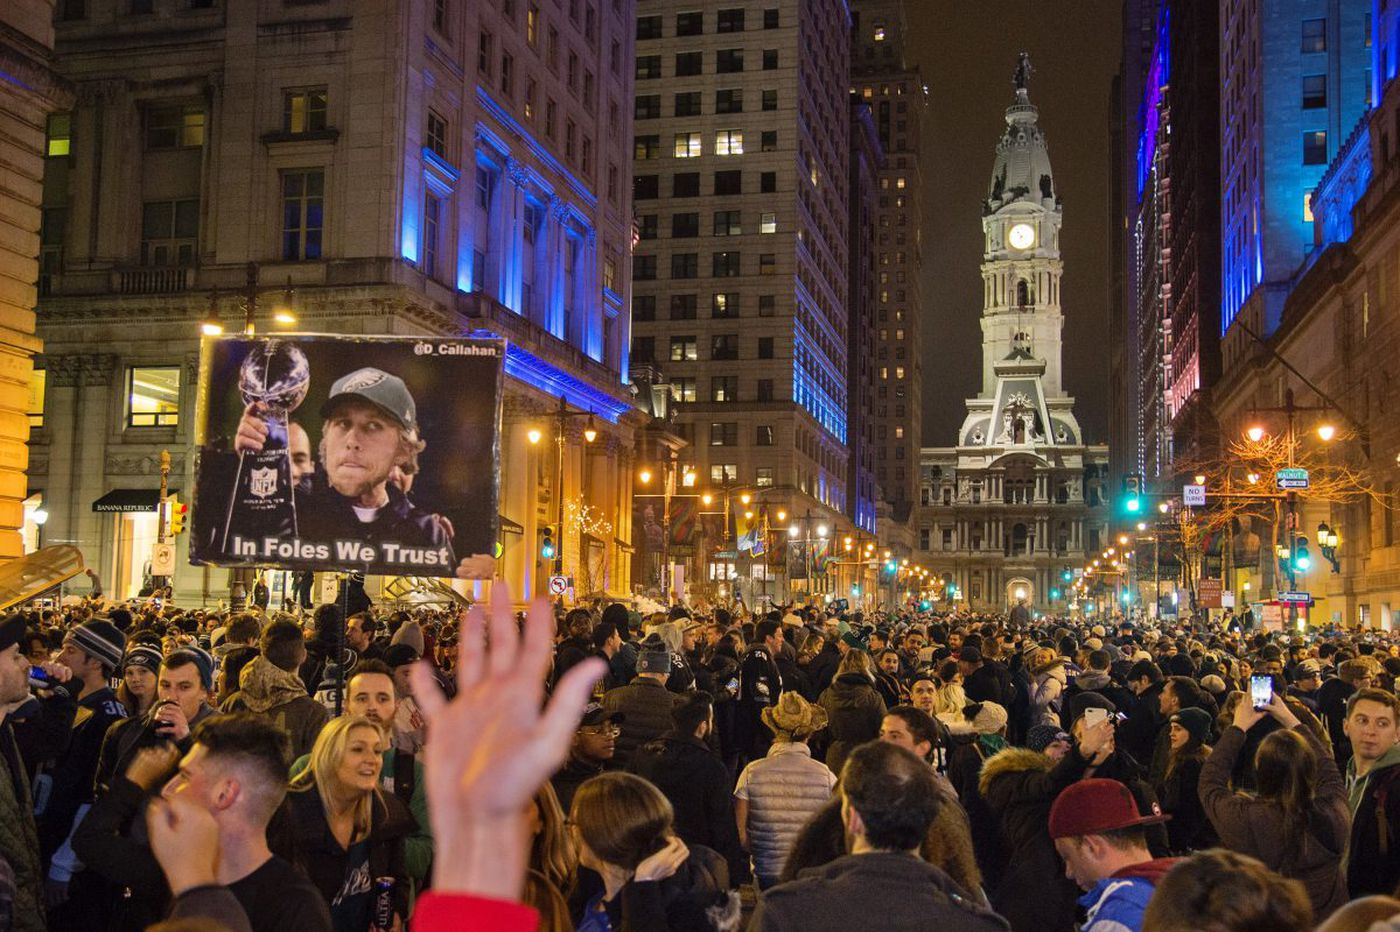 Eagles head to Super Bowl, government shutdown continues | Morning Newsletter